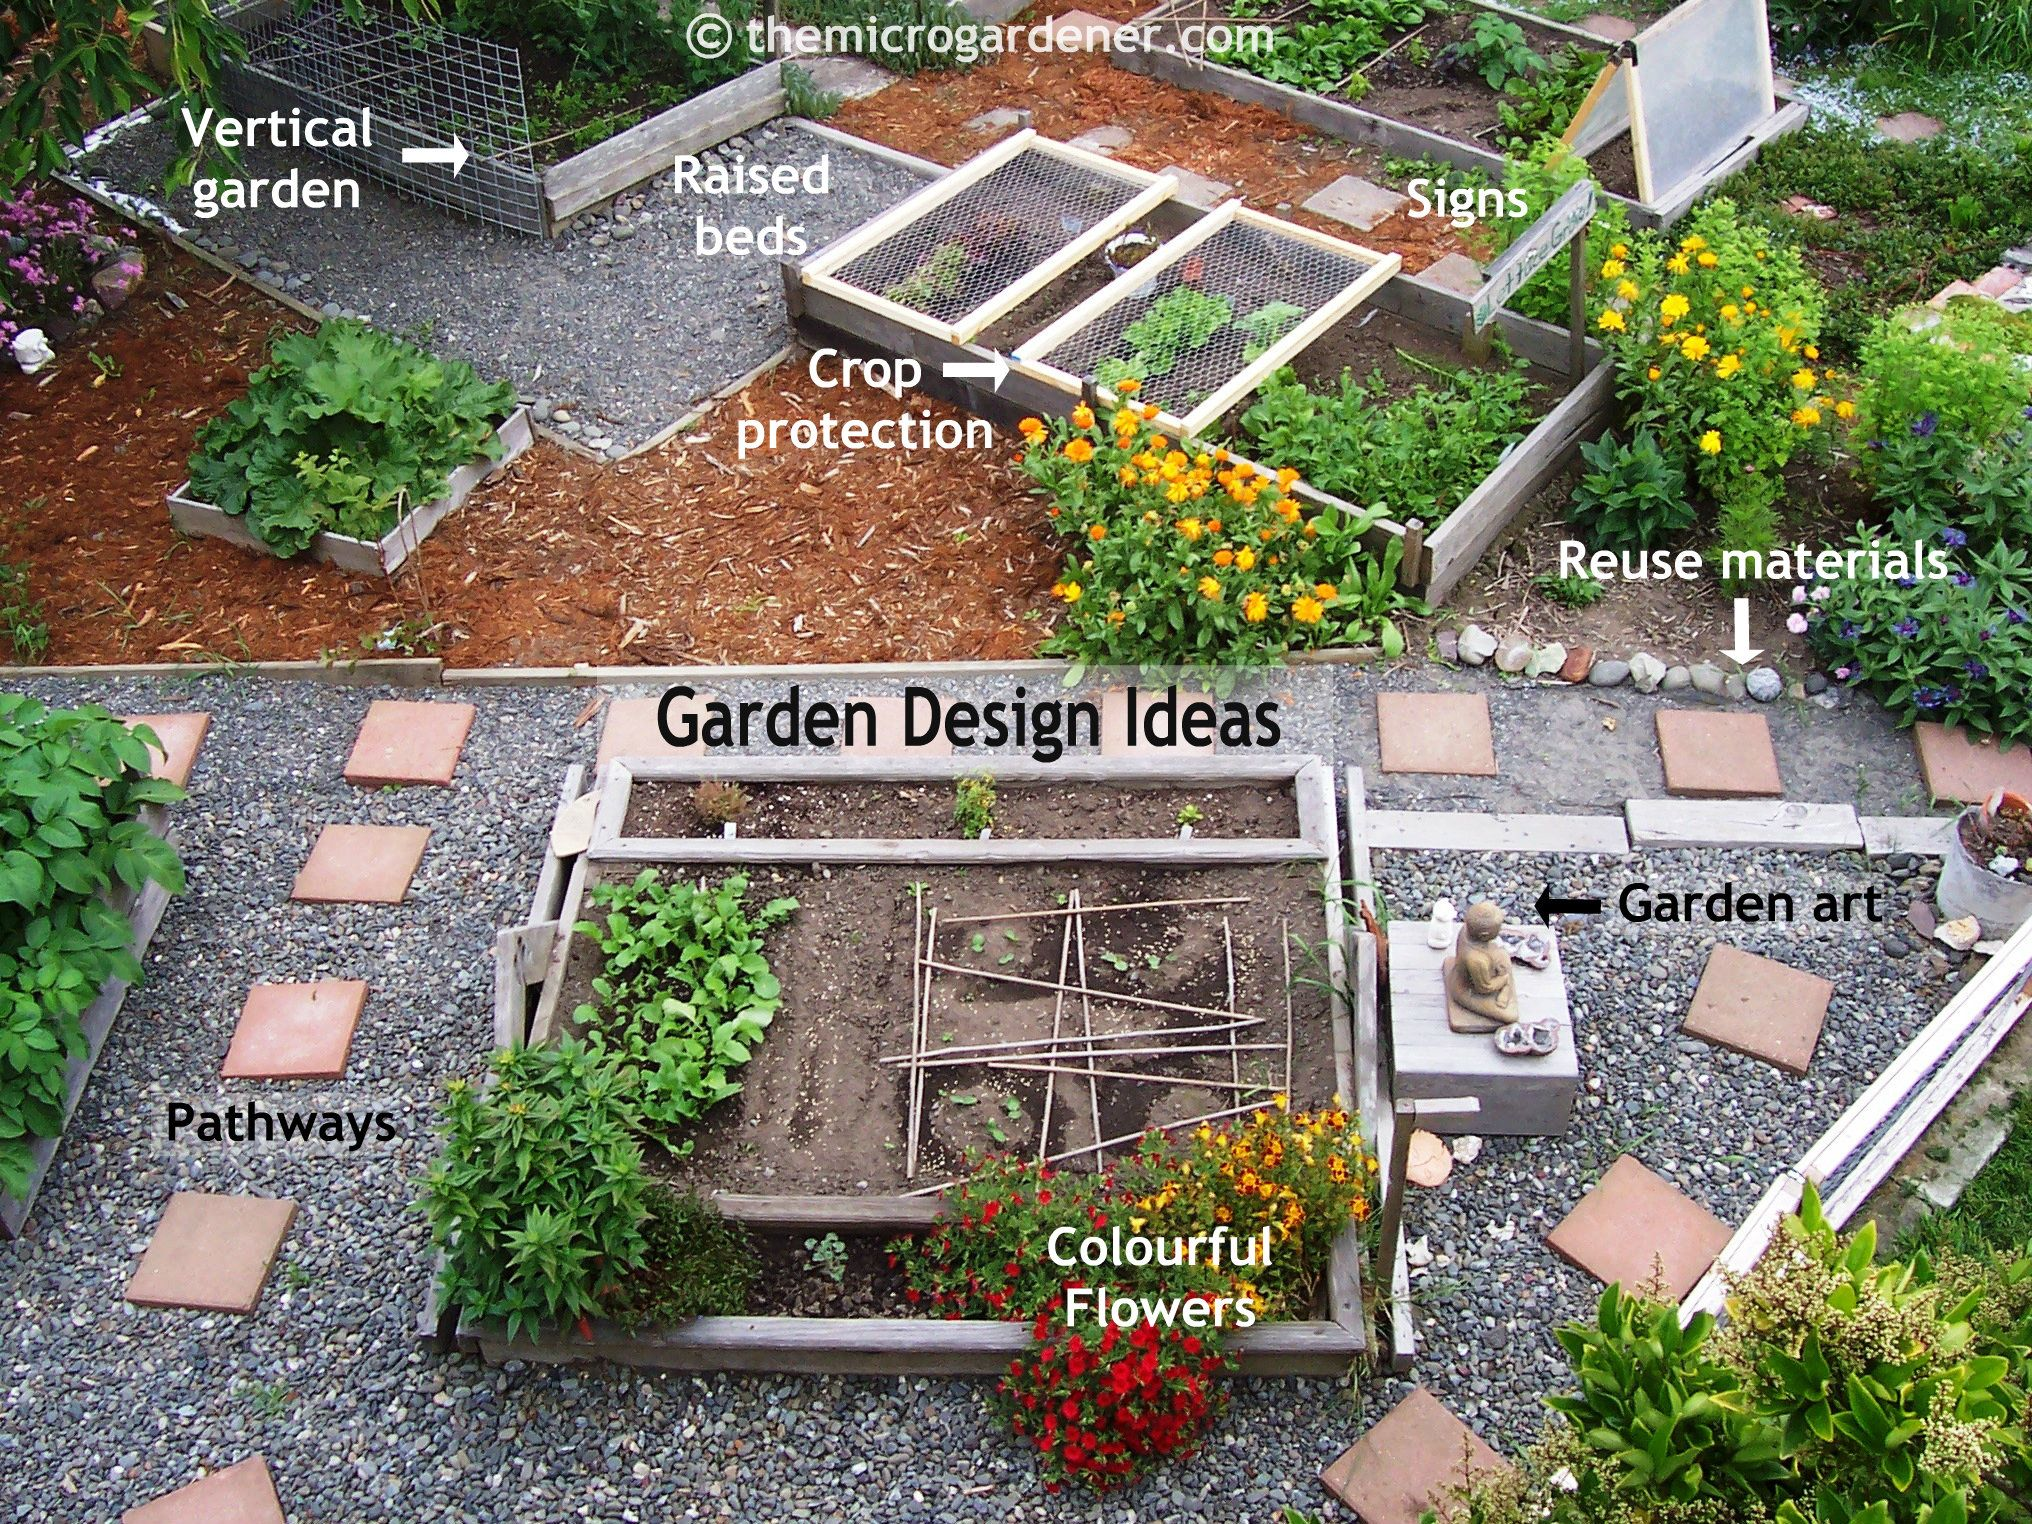 Planning A Kitchen Garden Small Garden Design Got Limited Space Or Planning A Kitchen